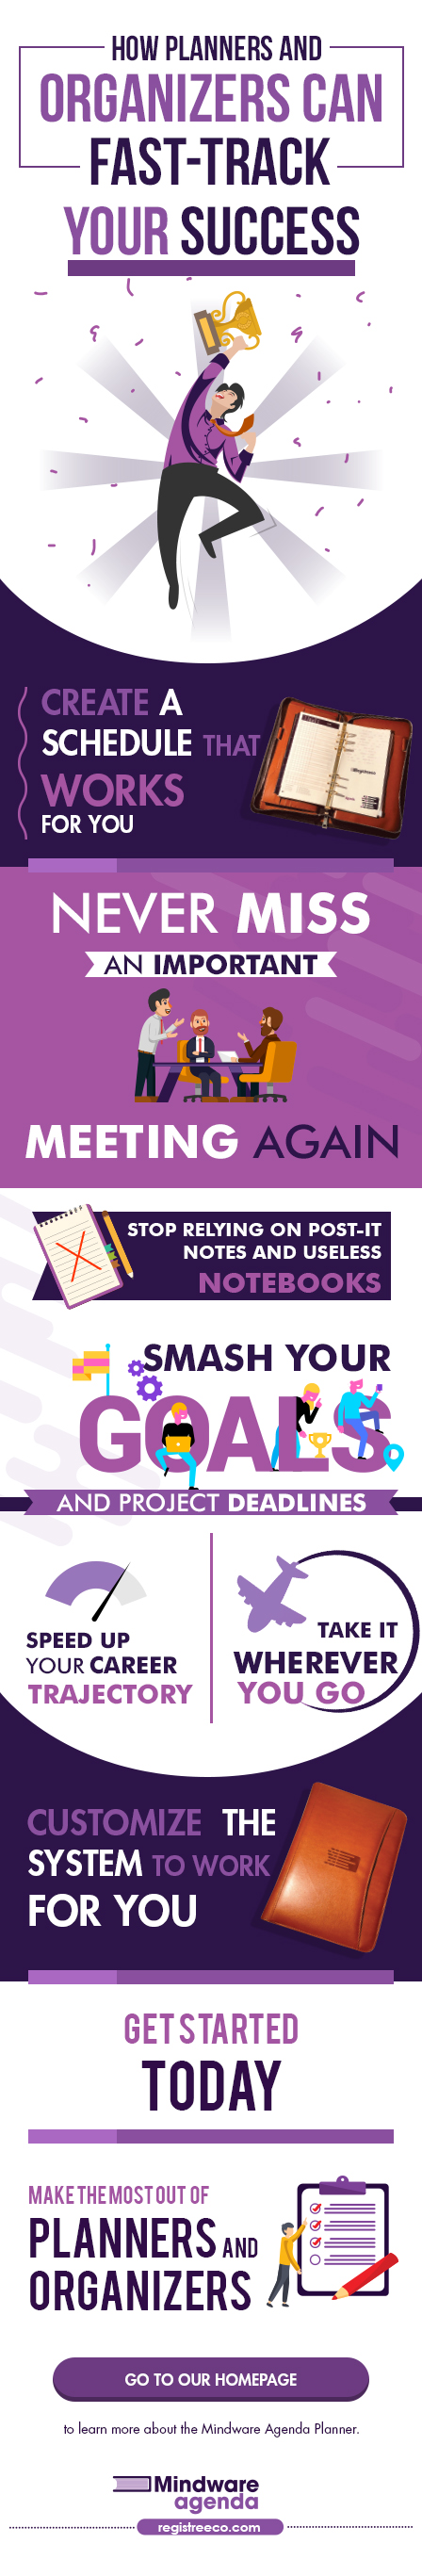 Infographic about planners and organizers and how they can help you better manage the busiest of lifestyles while reducing your personal stress and anxiety.